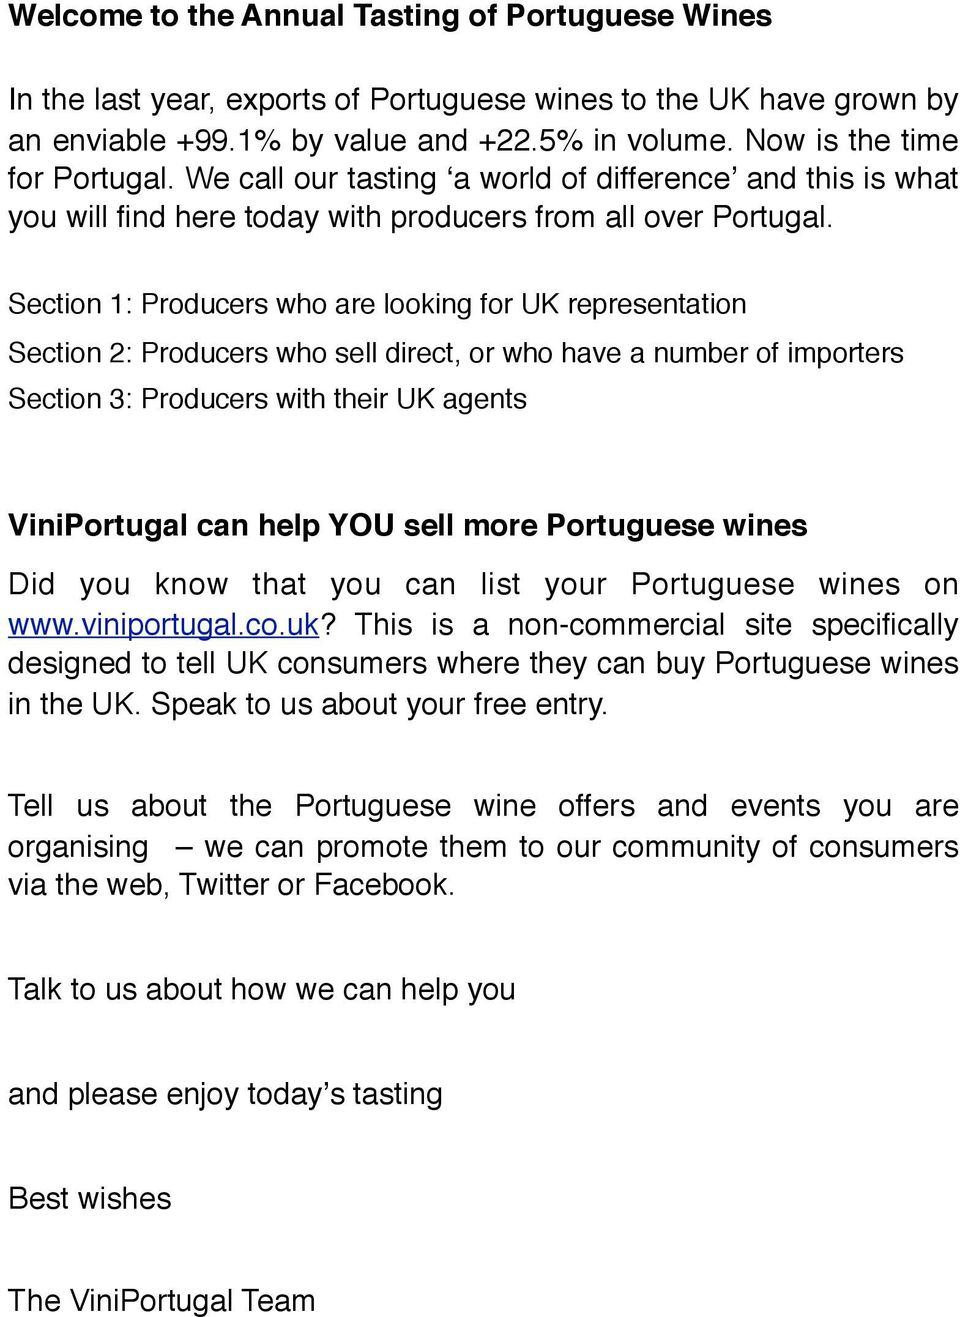 Section 1: Producers who are looking for UK representation Section 2: Producers who sell direct, or who have a number of importers Section 3: Producers with their UK agents ViniPortugal can help YOU